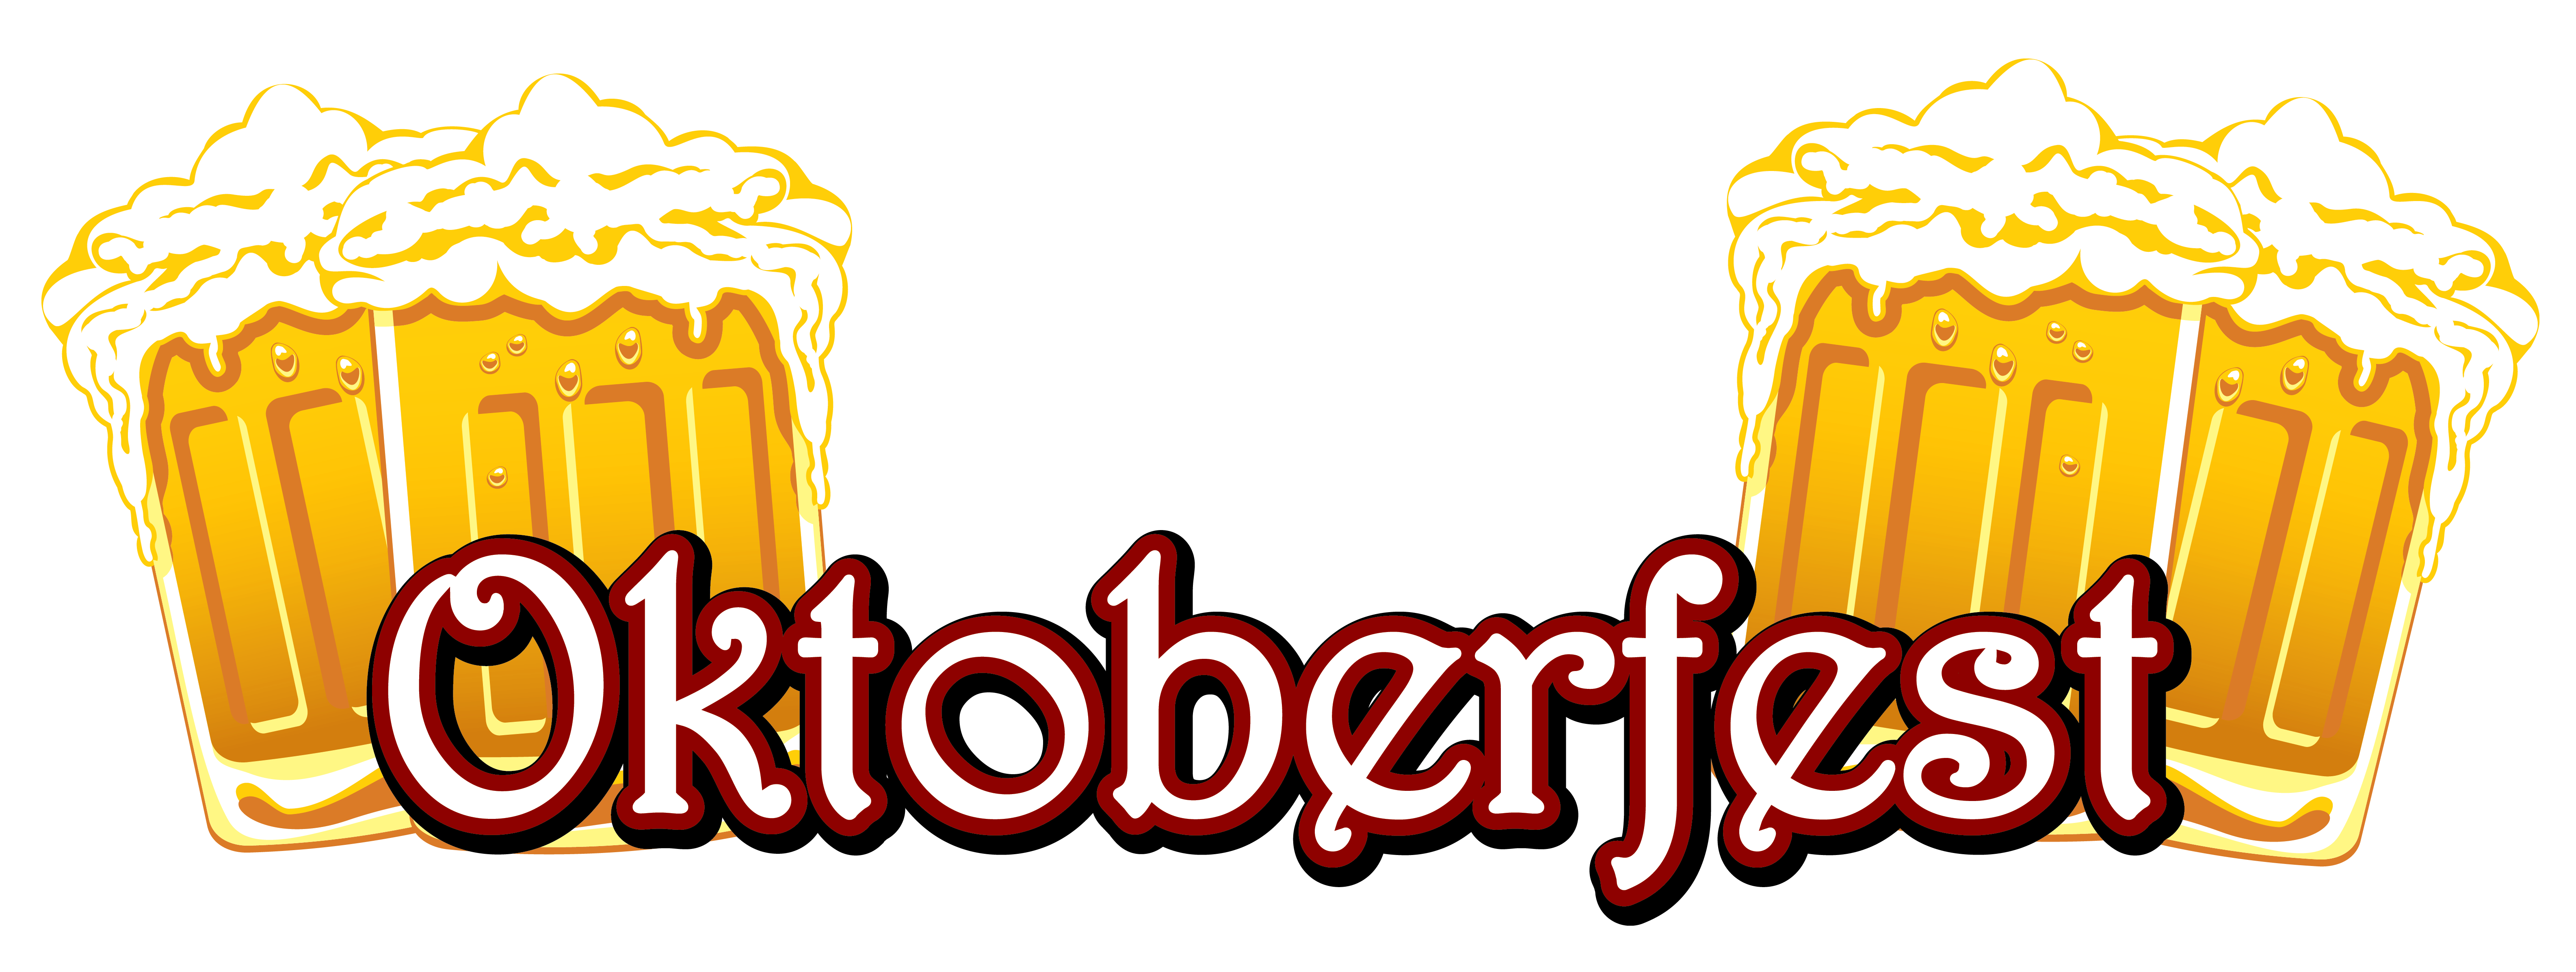 Oktoberfest vector artwork. Text and beers png